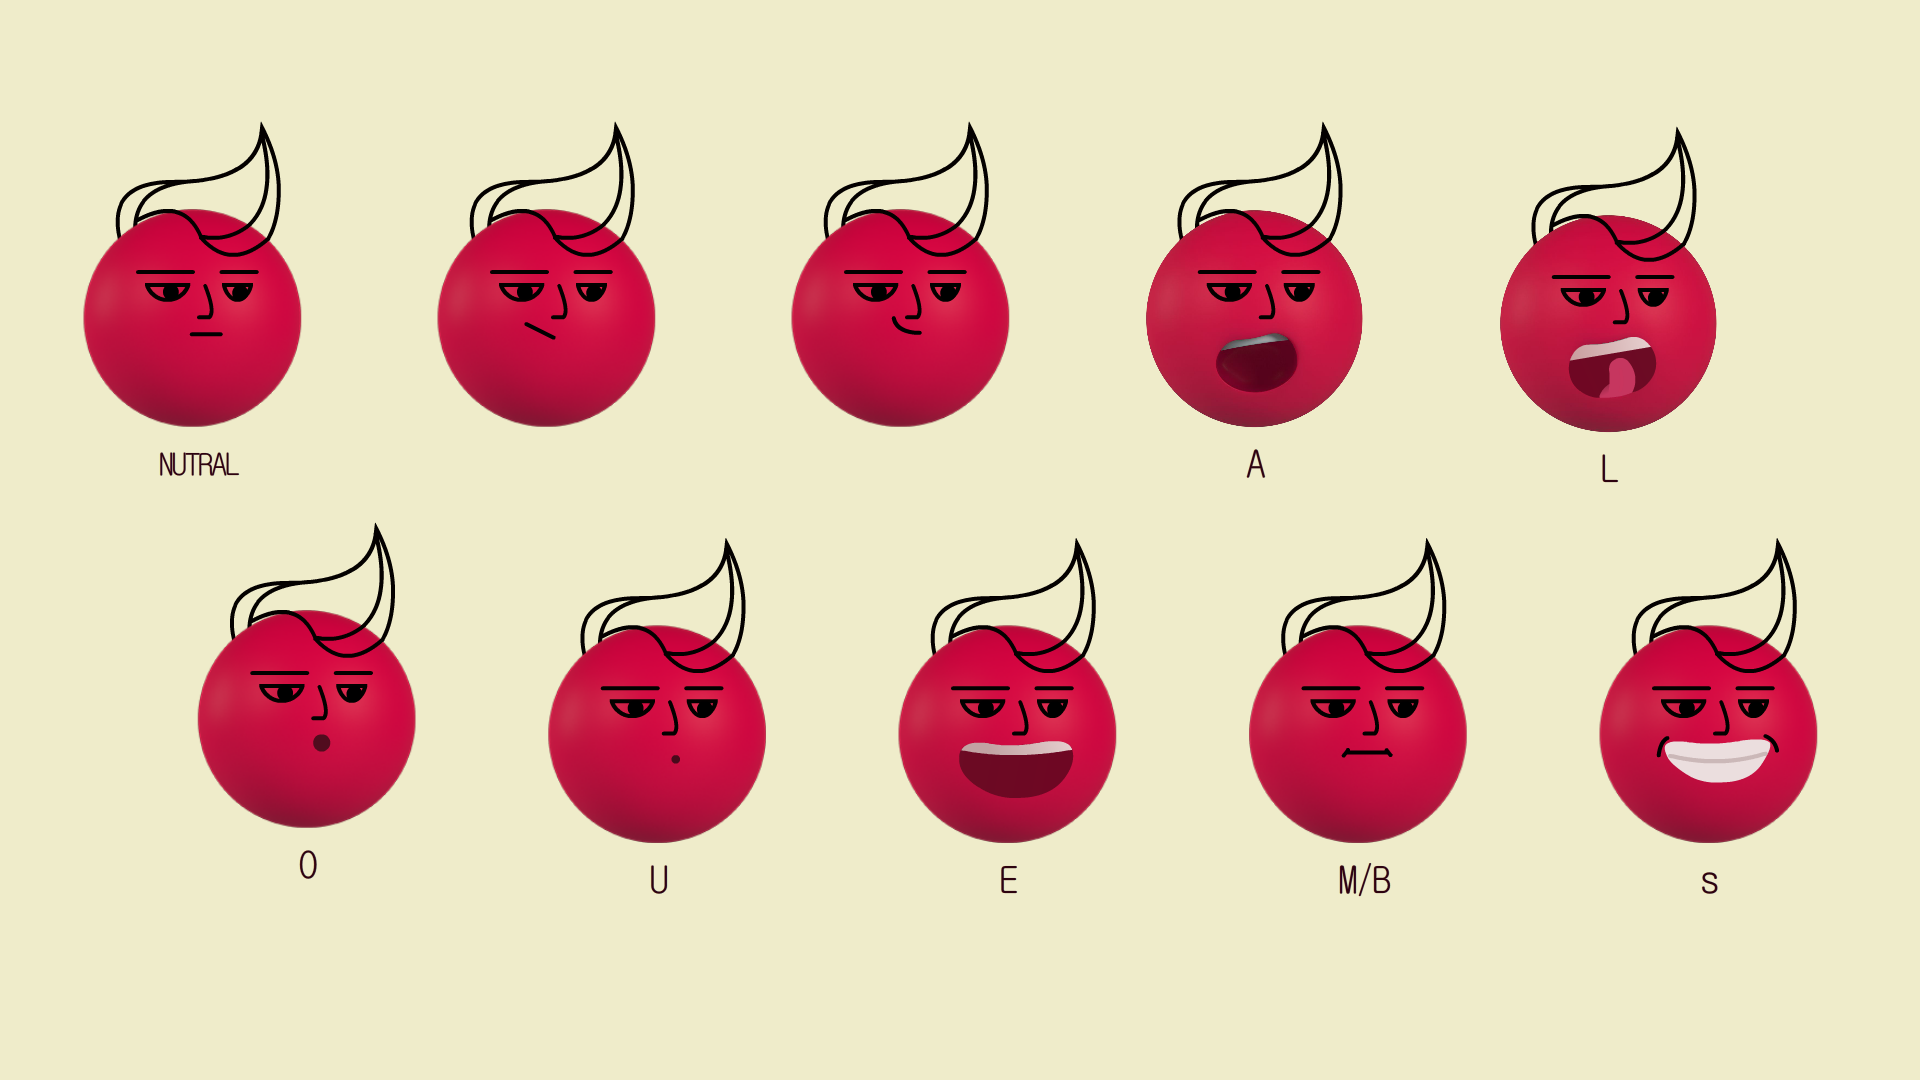 WCLC_design_proposed_mouth_shapes_v022.png